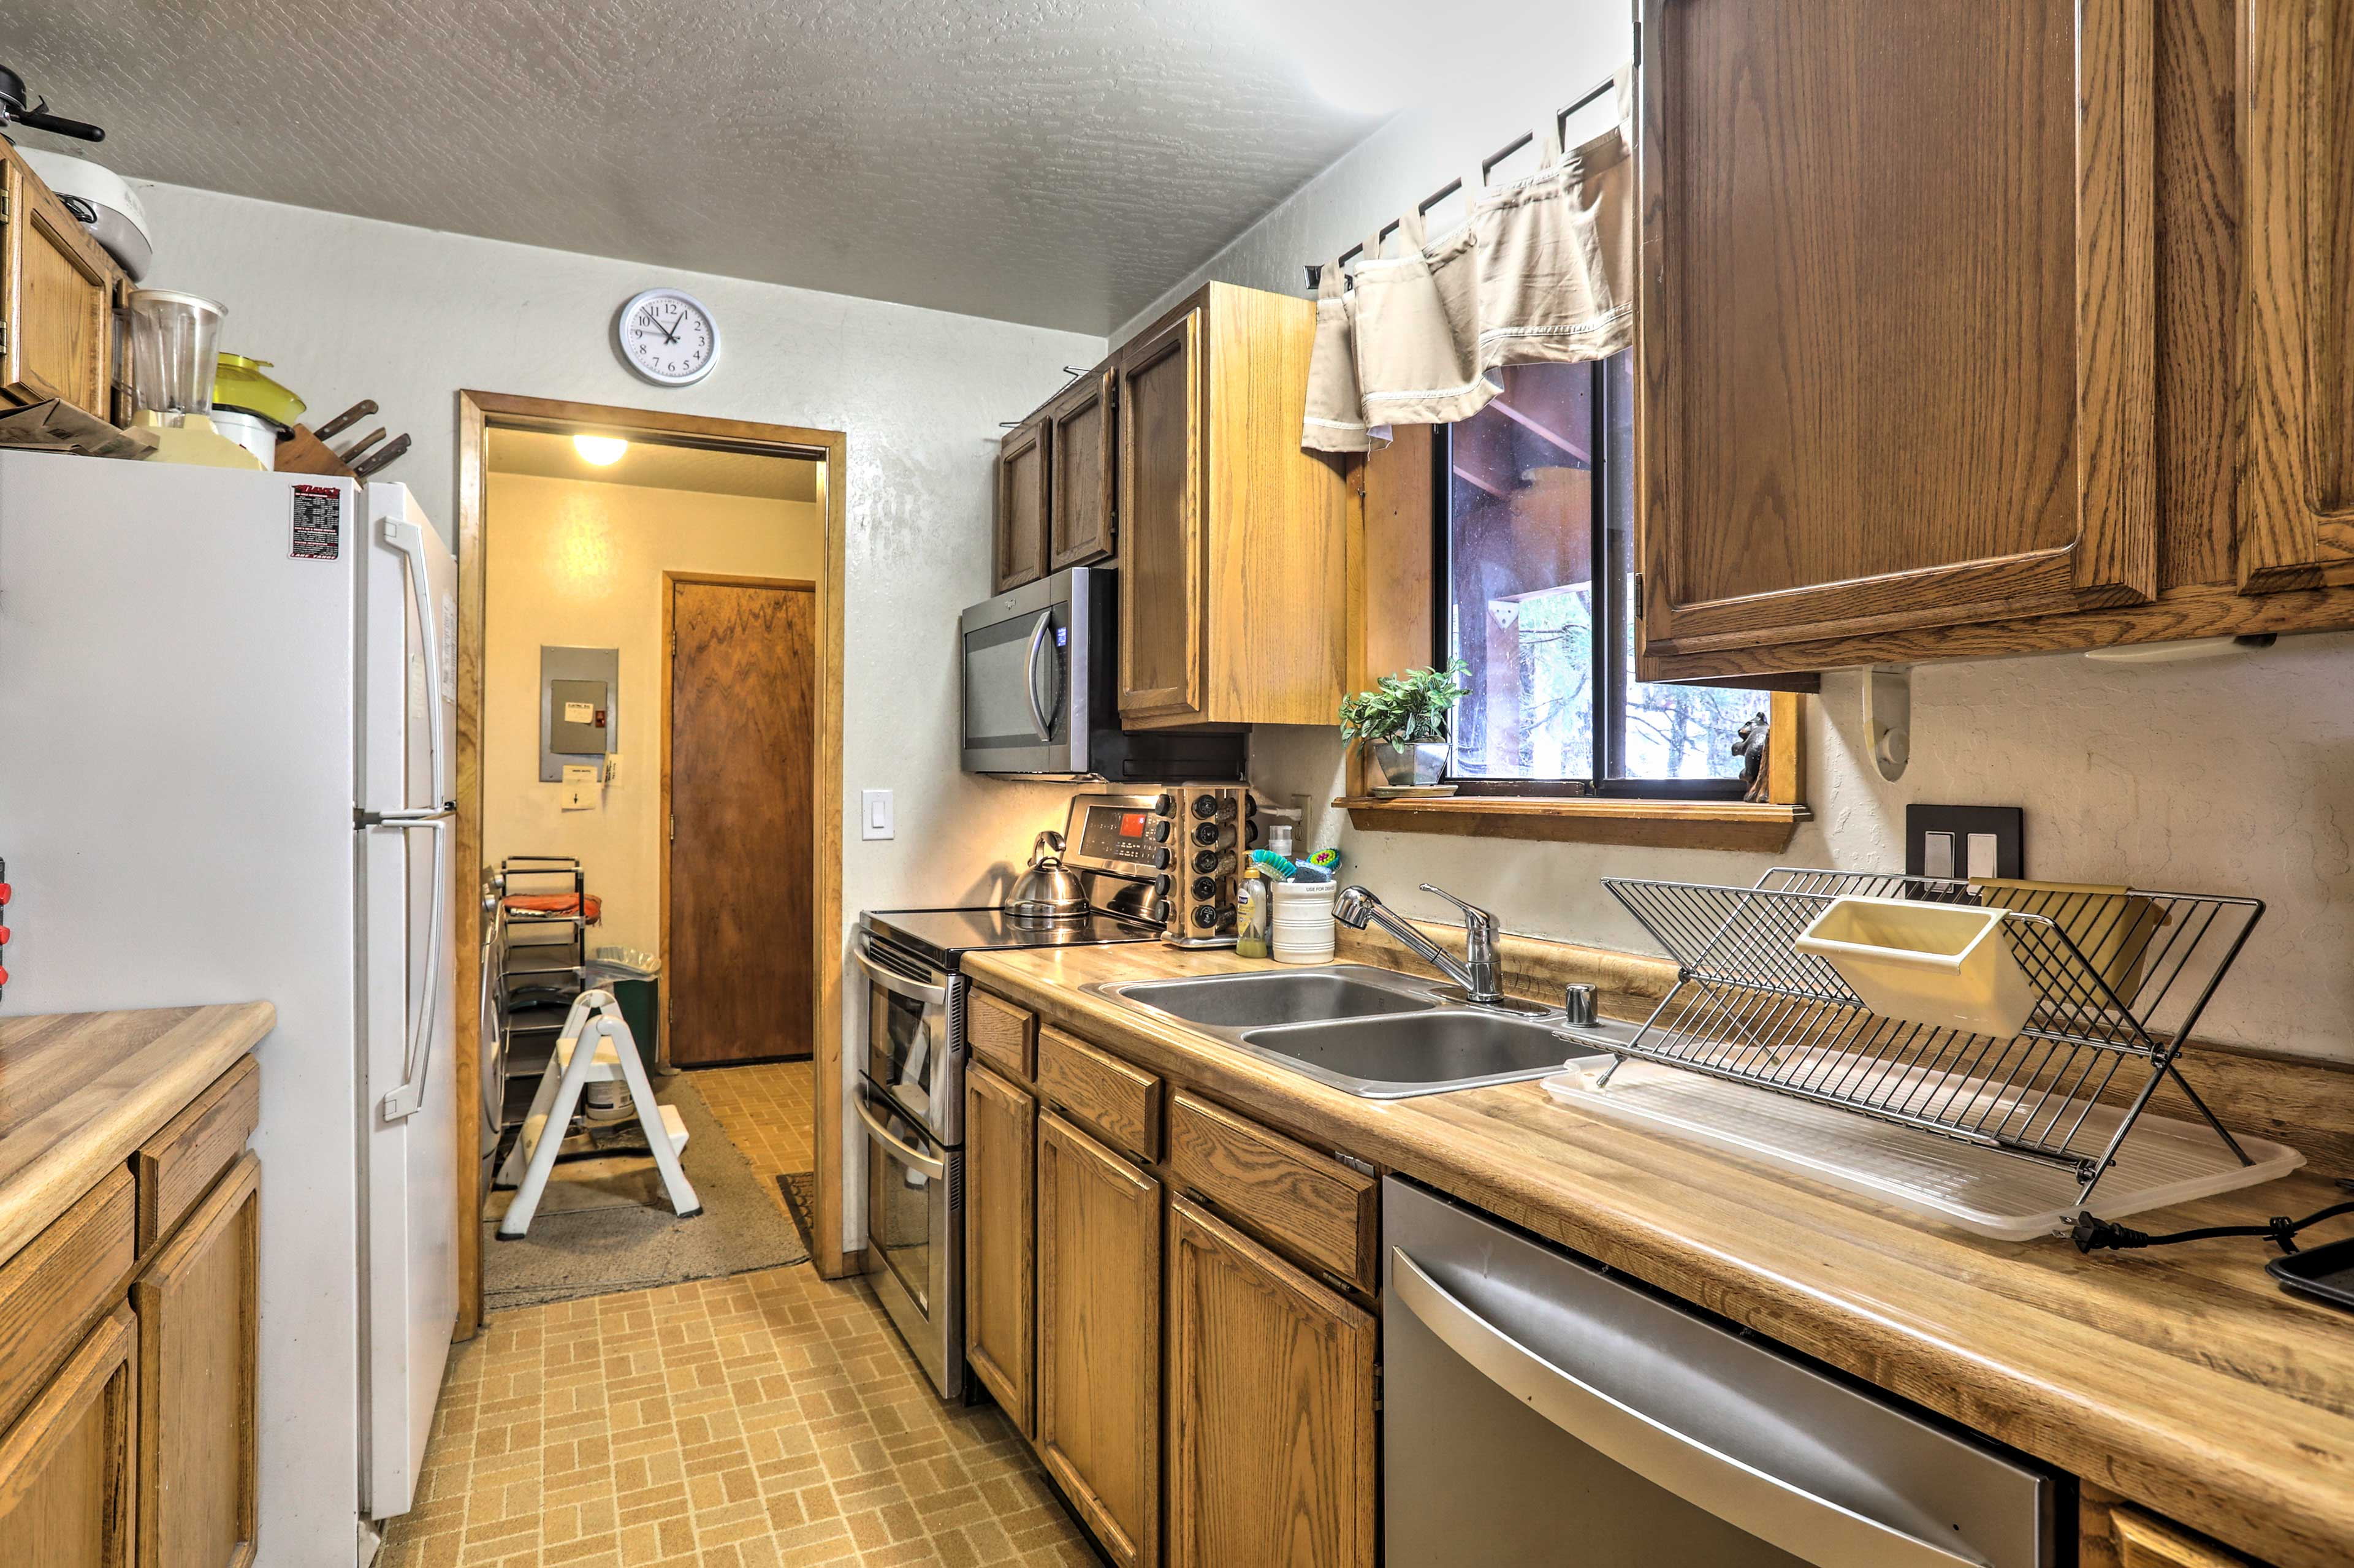 Stainless steel appliances enhance the kitchen!